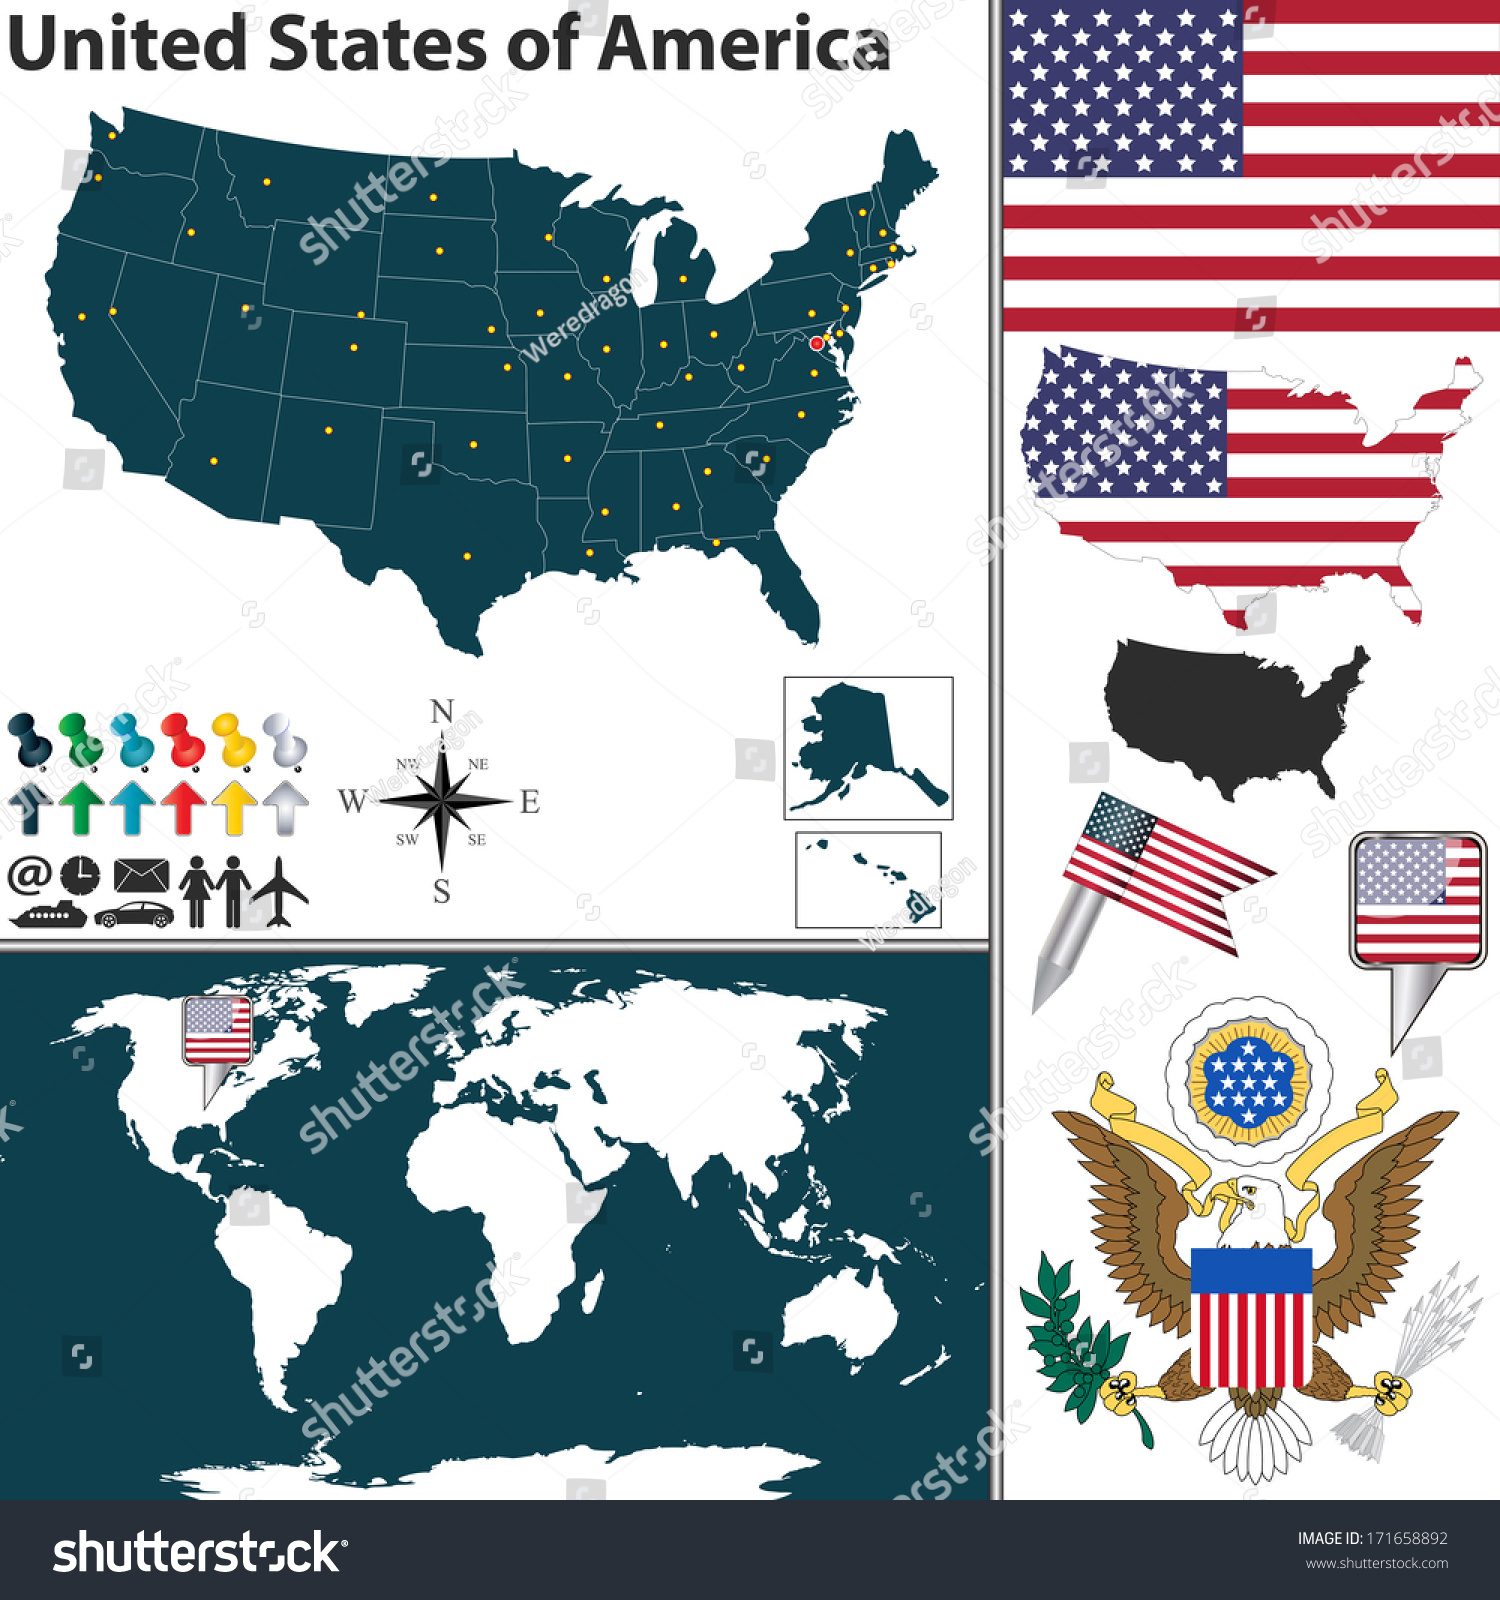 Vector Map Of United States Of America With Regions Coat Of Arms And Location On